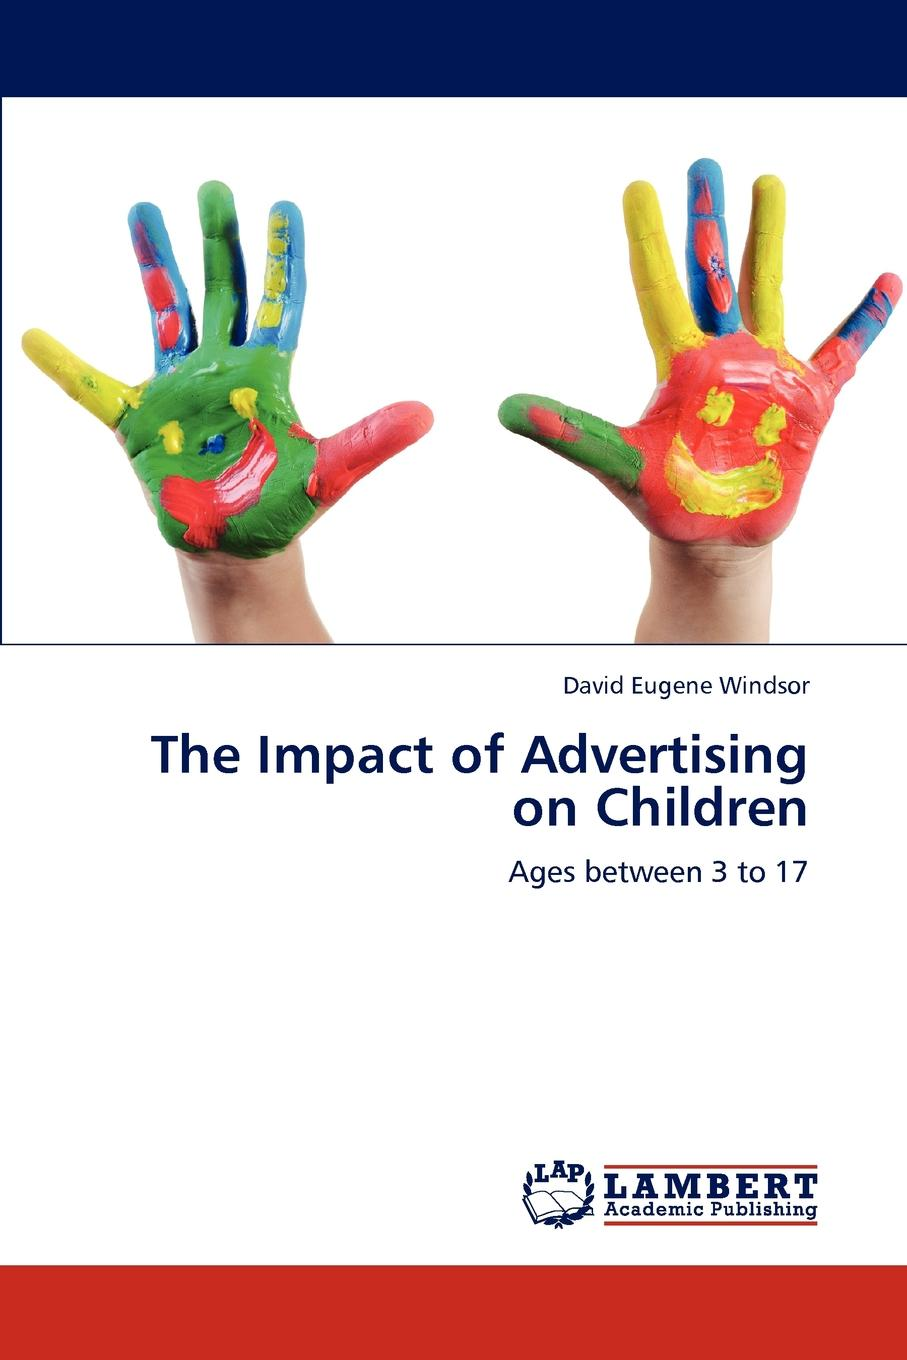 David Eugene Windsor The Impact of Advertising on Children rob bell drops like stars a few thoughts on creativity and suffering